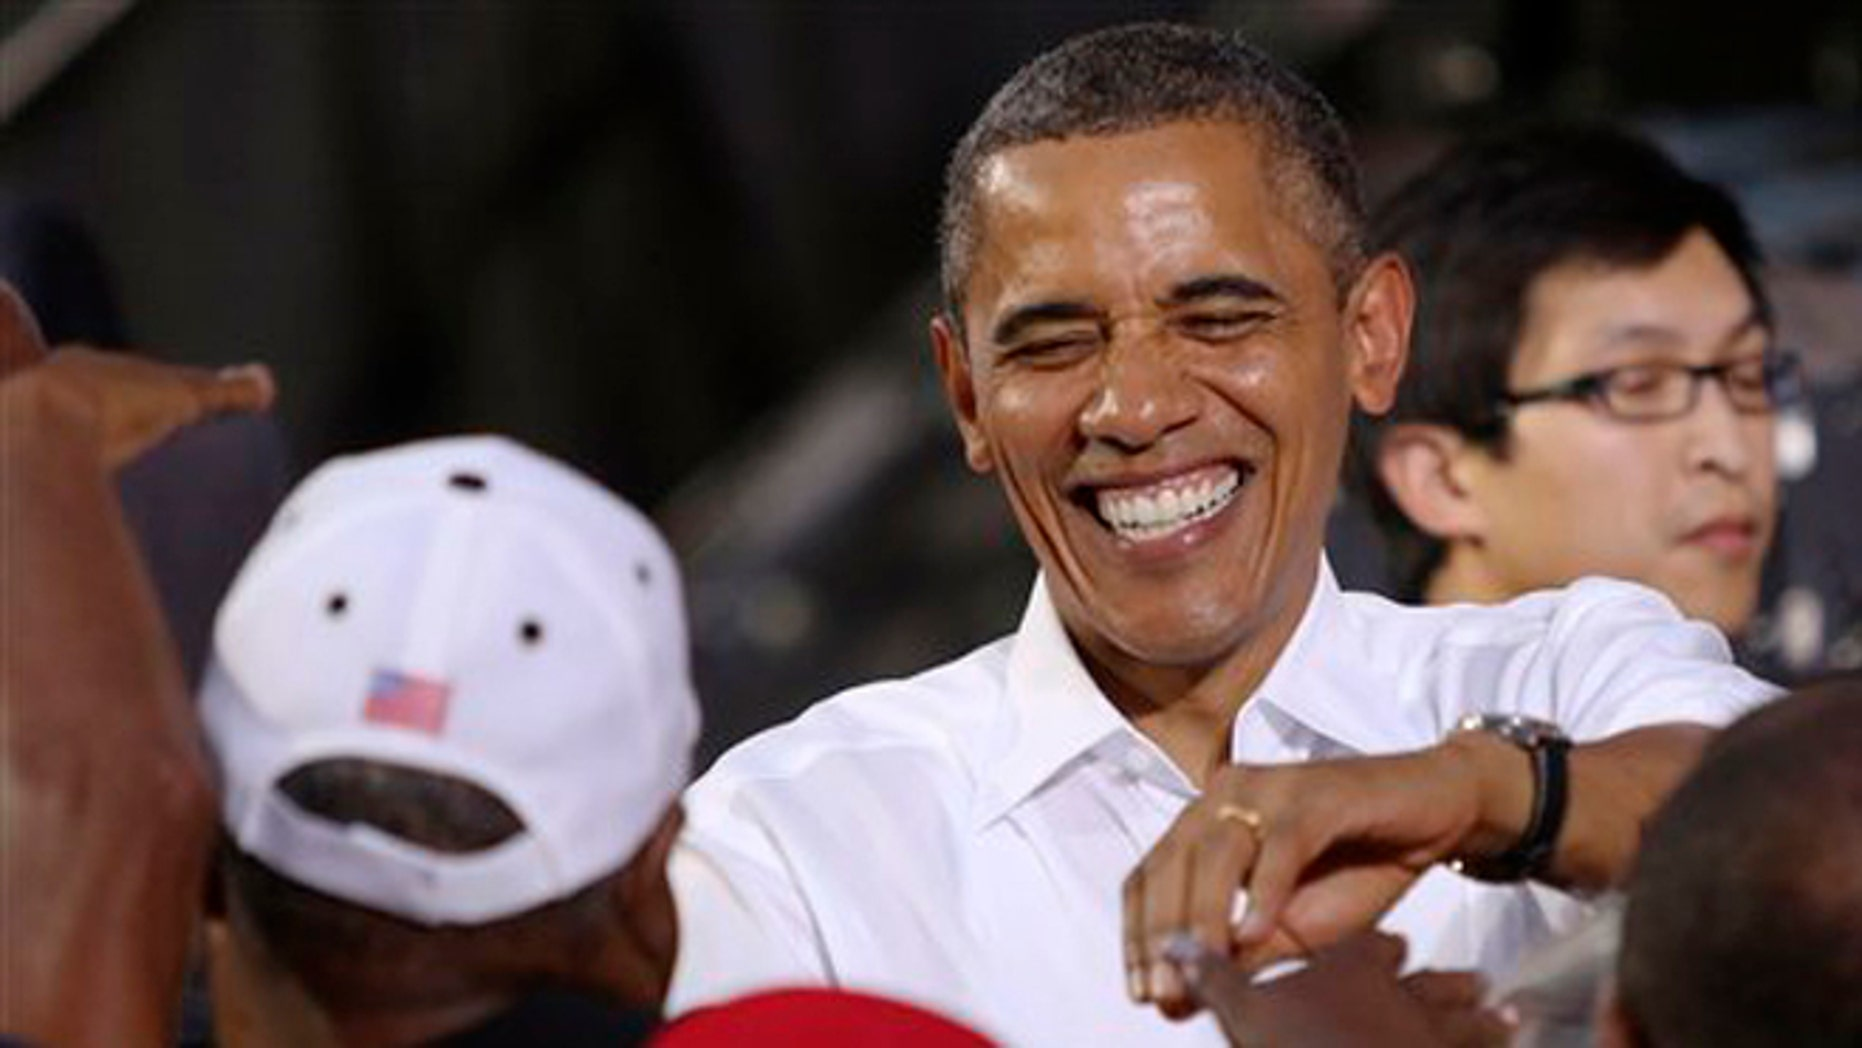 FILE: July 13, 2012: President Barack Obama greets supporters supporters following a rally in Roanoke, Va.